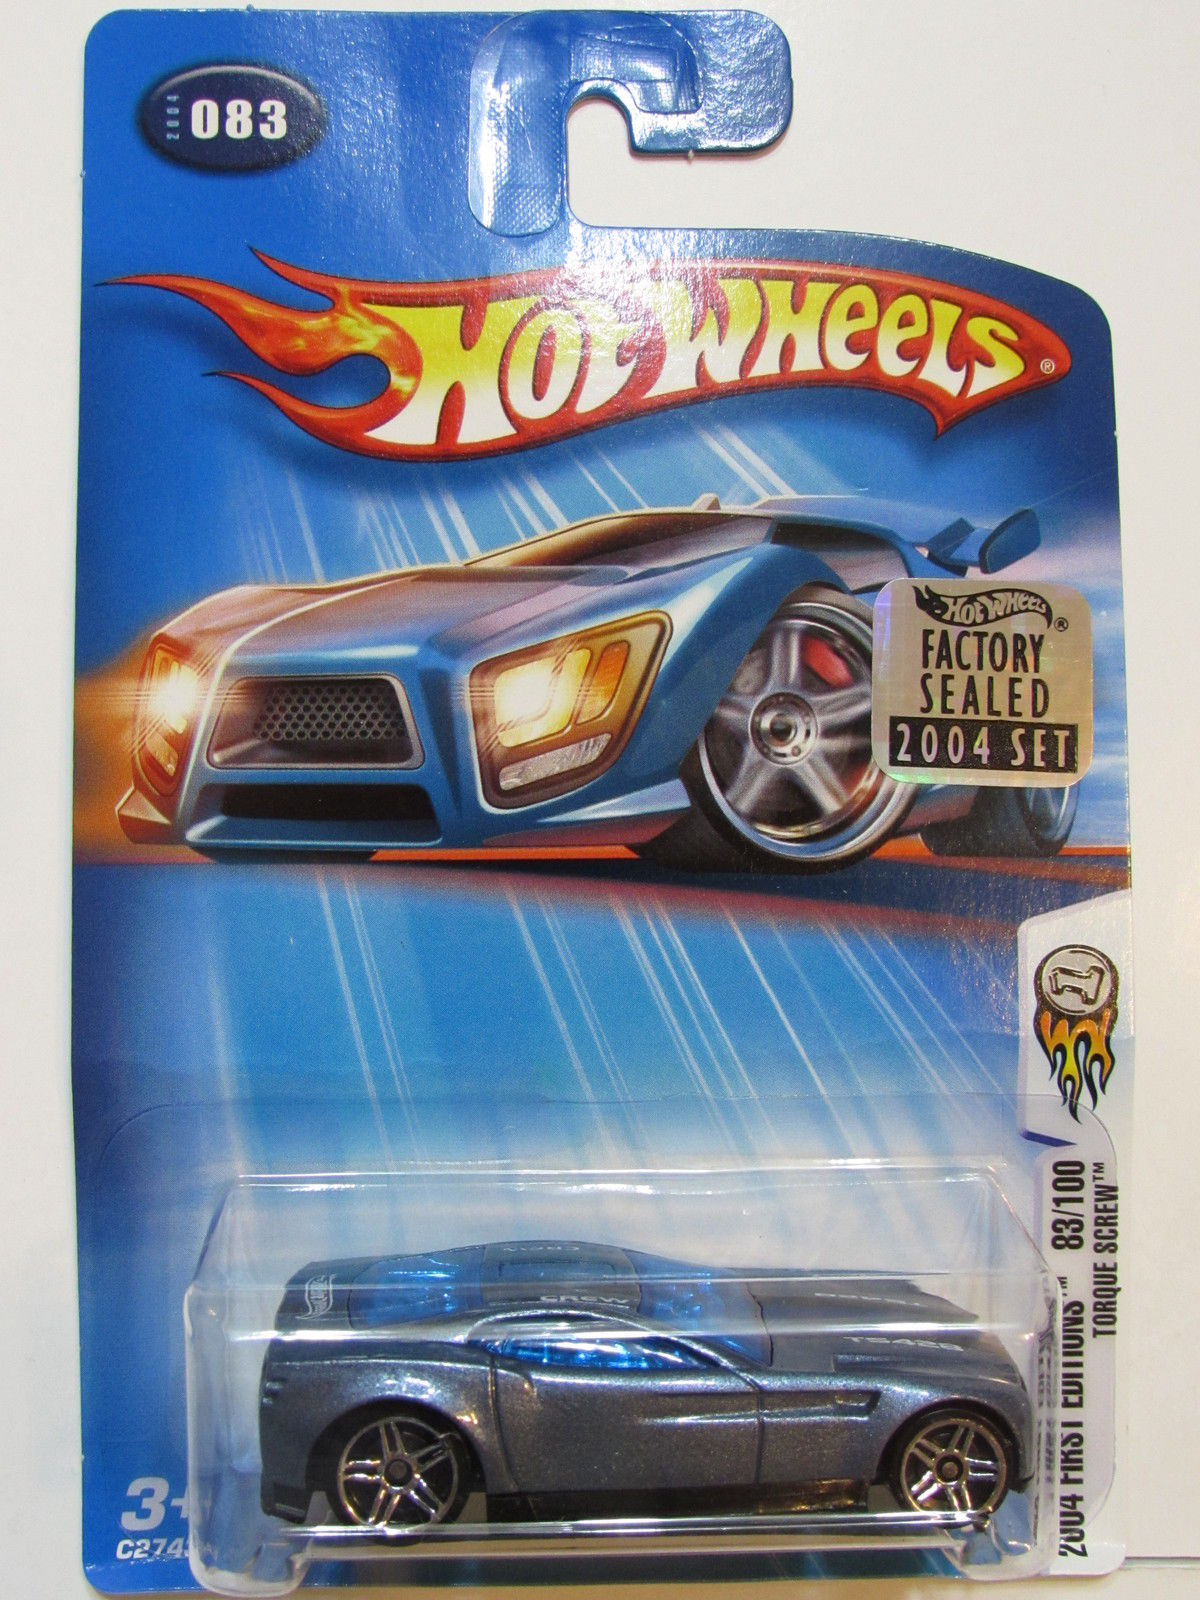 HOT WHEELS 2004 FIRST EDITIONS TORQUE SCREW #083 FACTORY SEALED